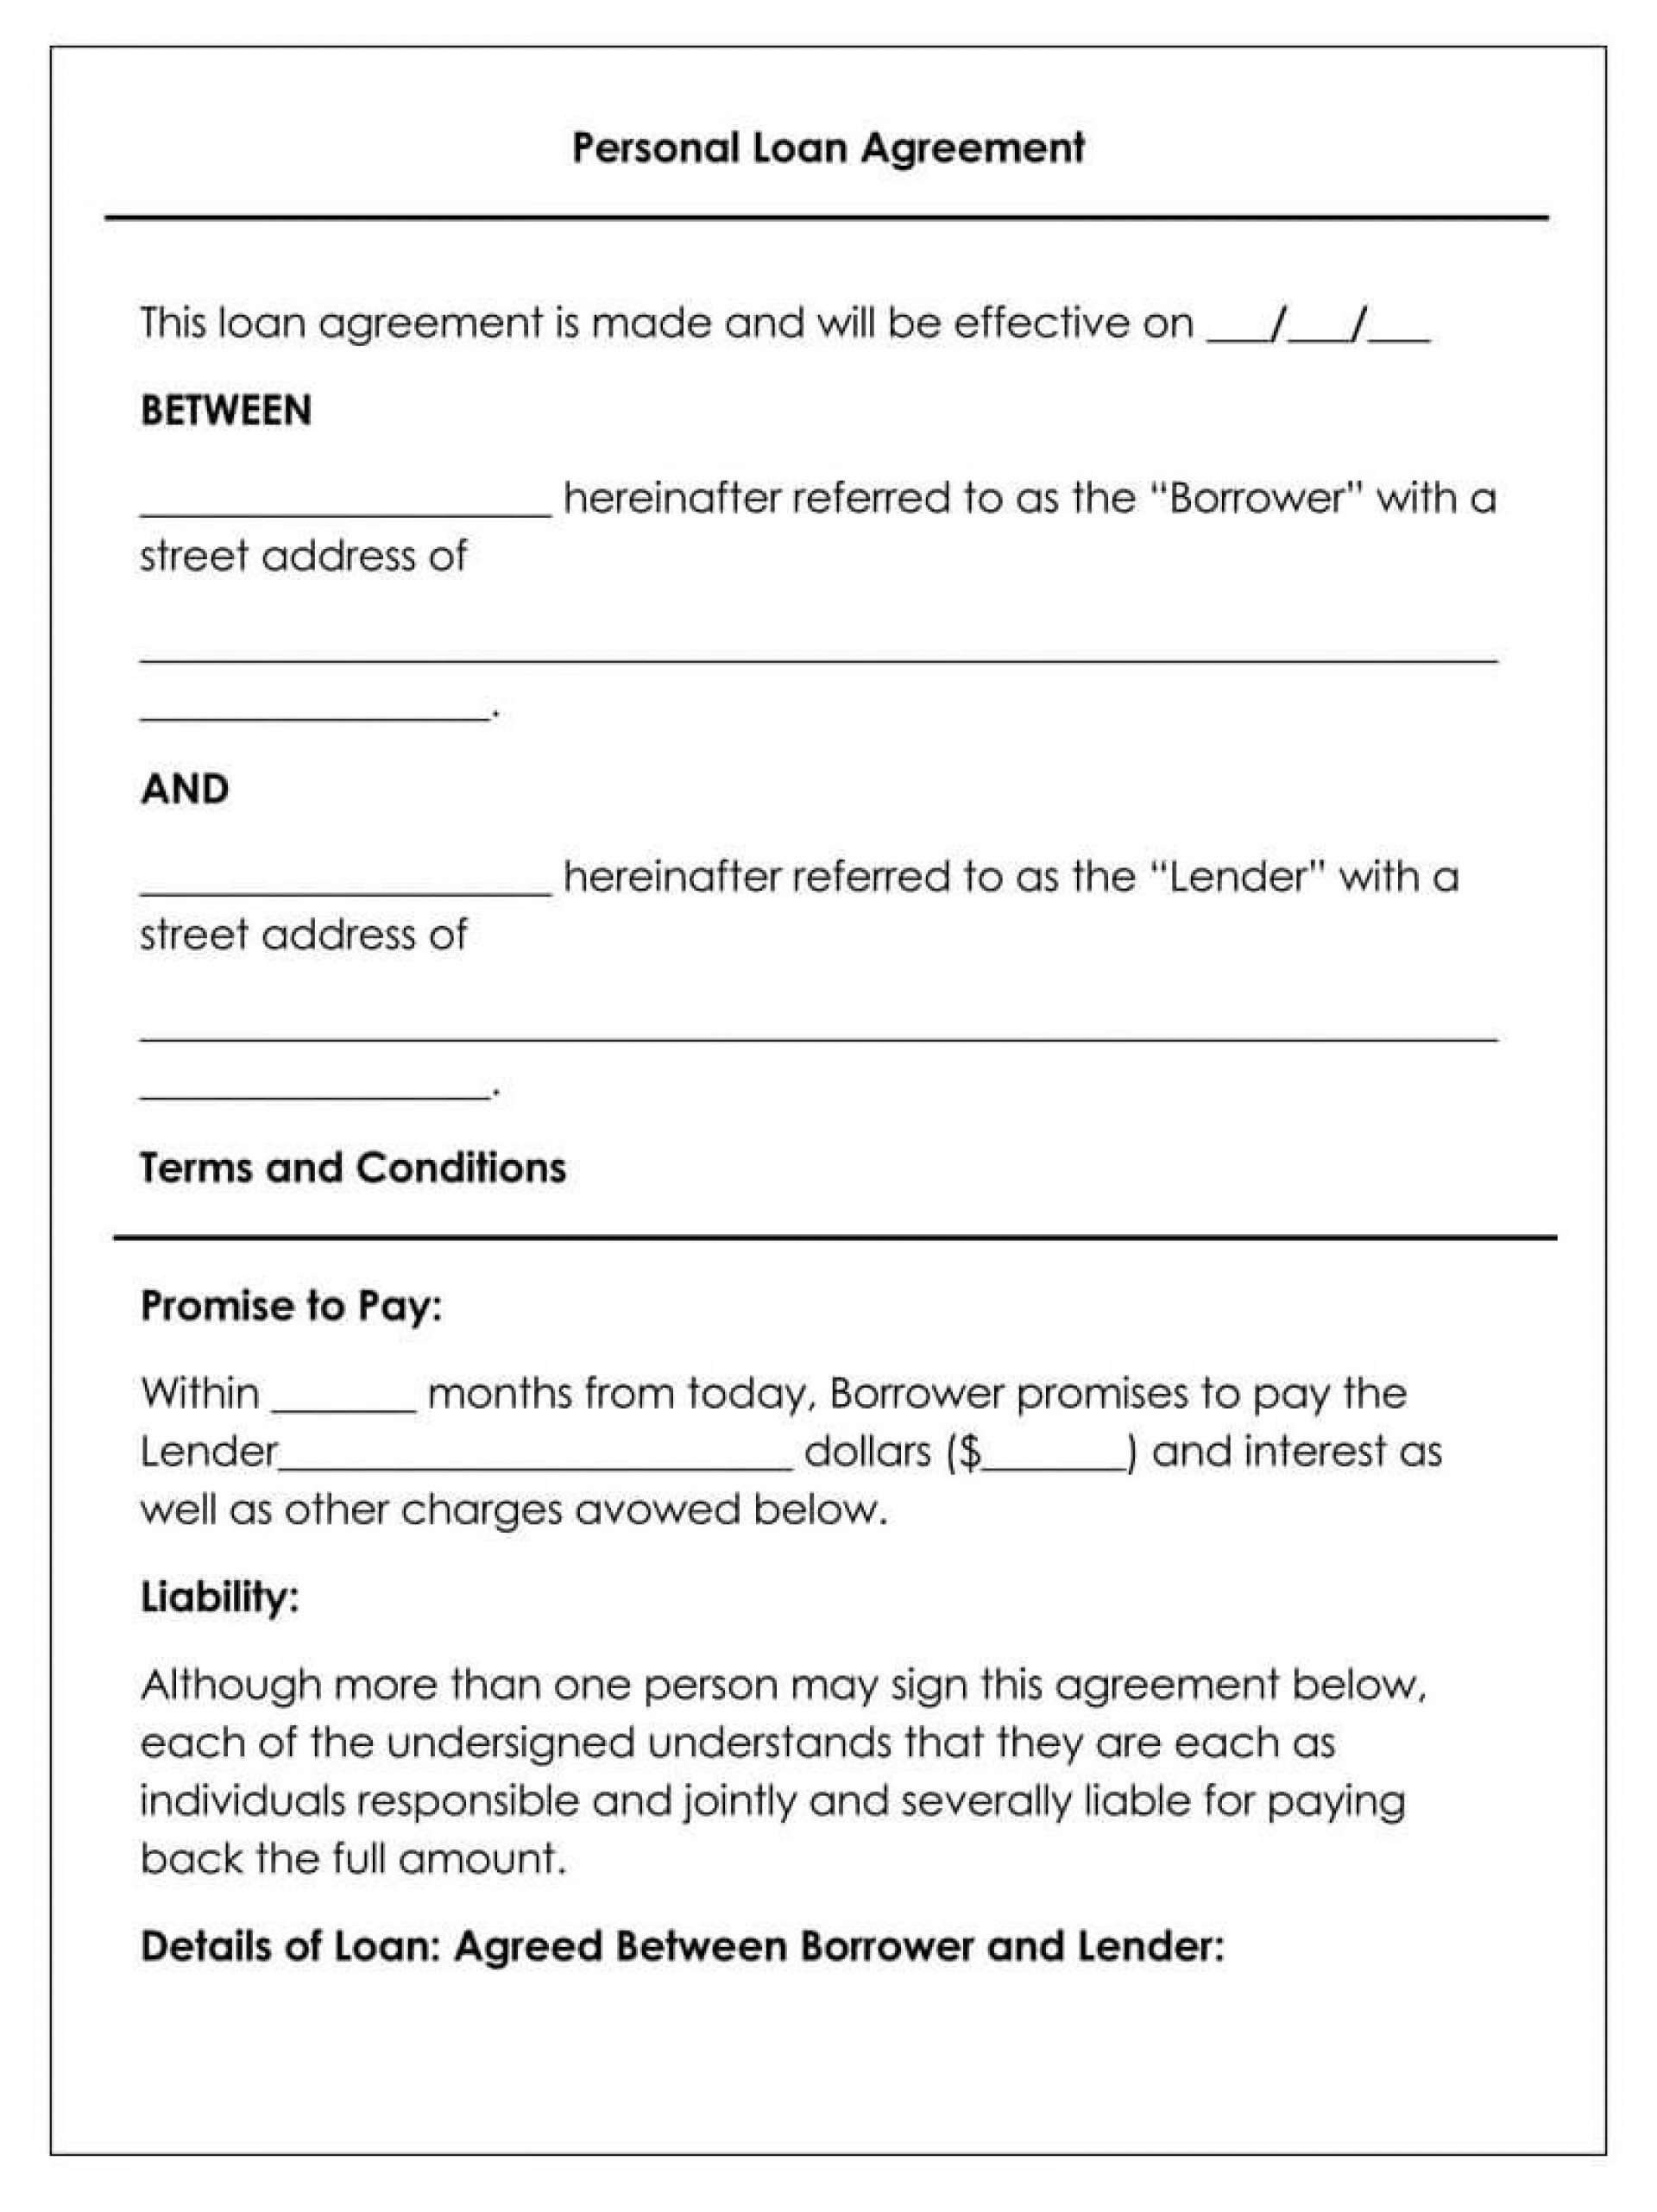 008 Fearsome Loan Agreement Template Free Image  Download Scotland Ontario Word1920